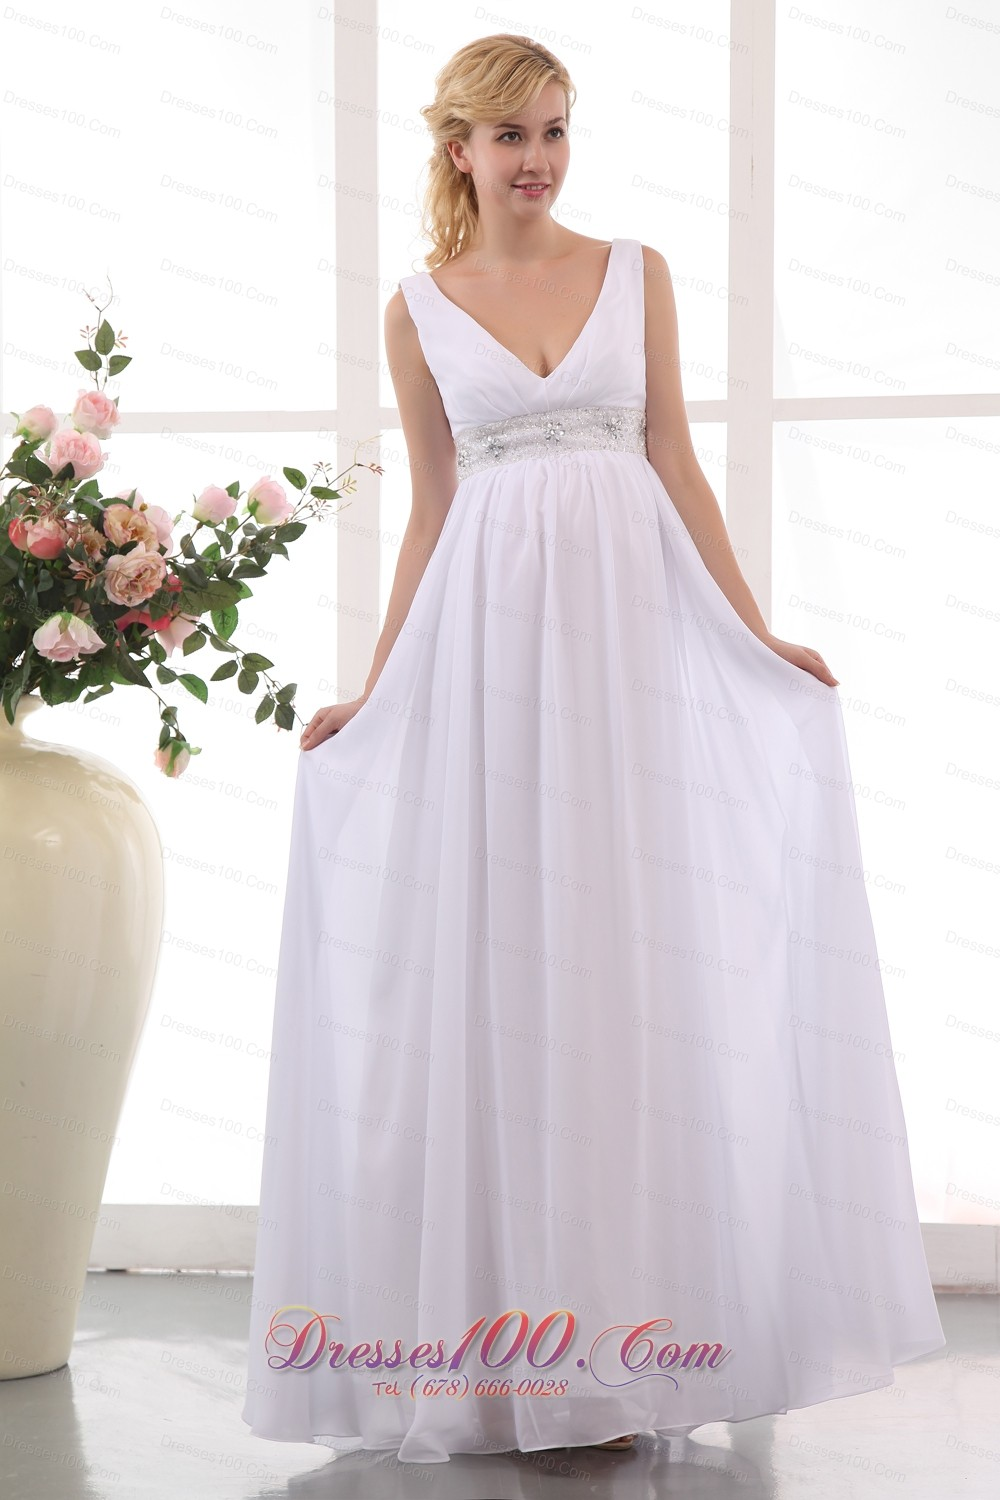 clearance maternity wedding dresses target wedding dresses Clearance Maternity Wedding Dresses 92